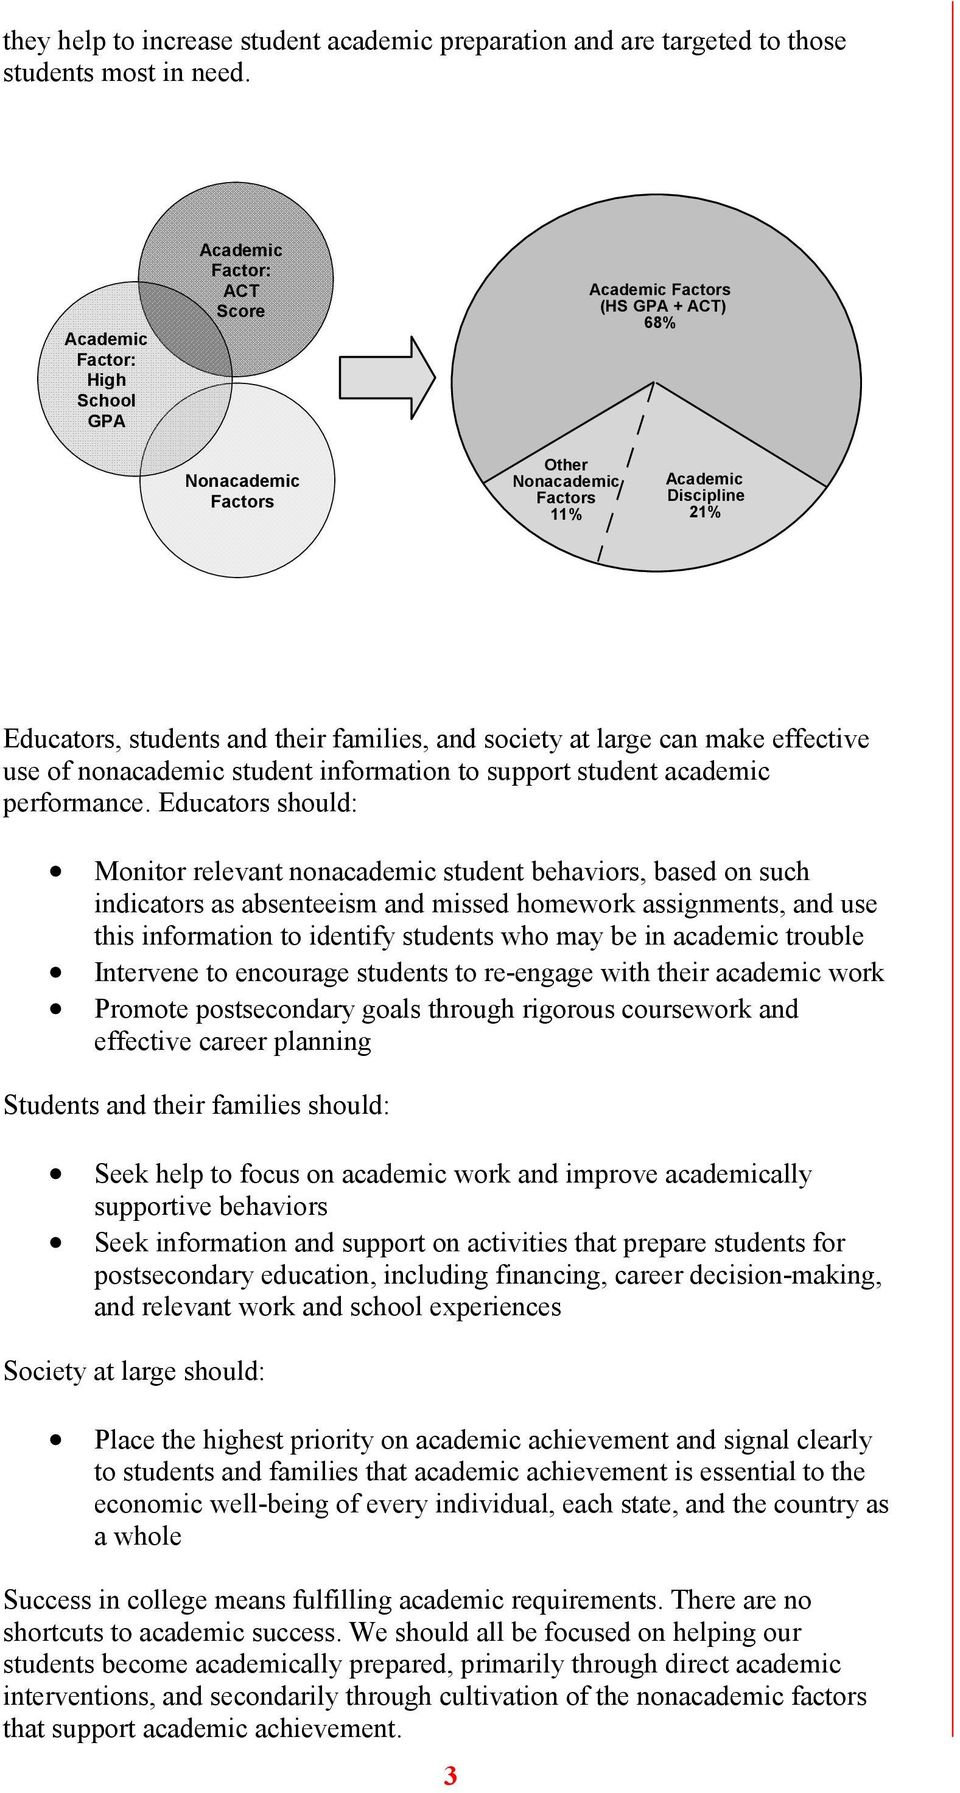 make effective use of nonacademic student information to support student academic performance.